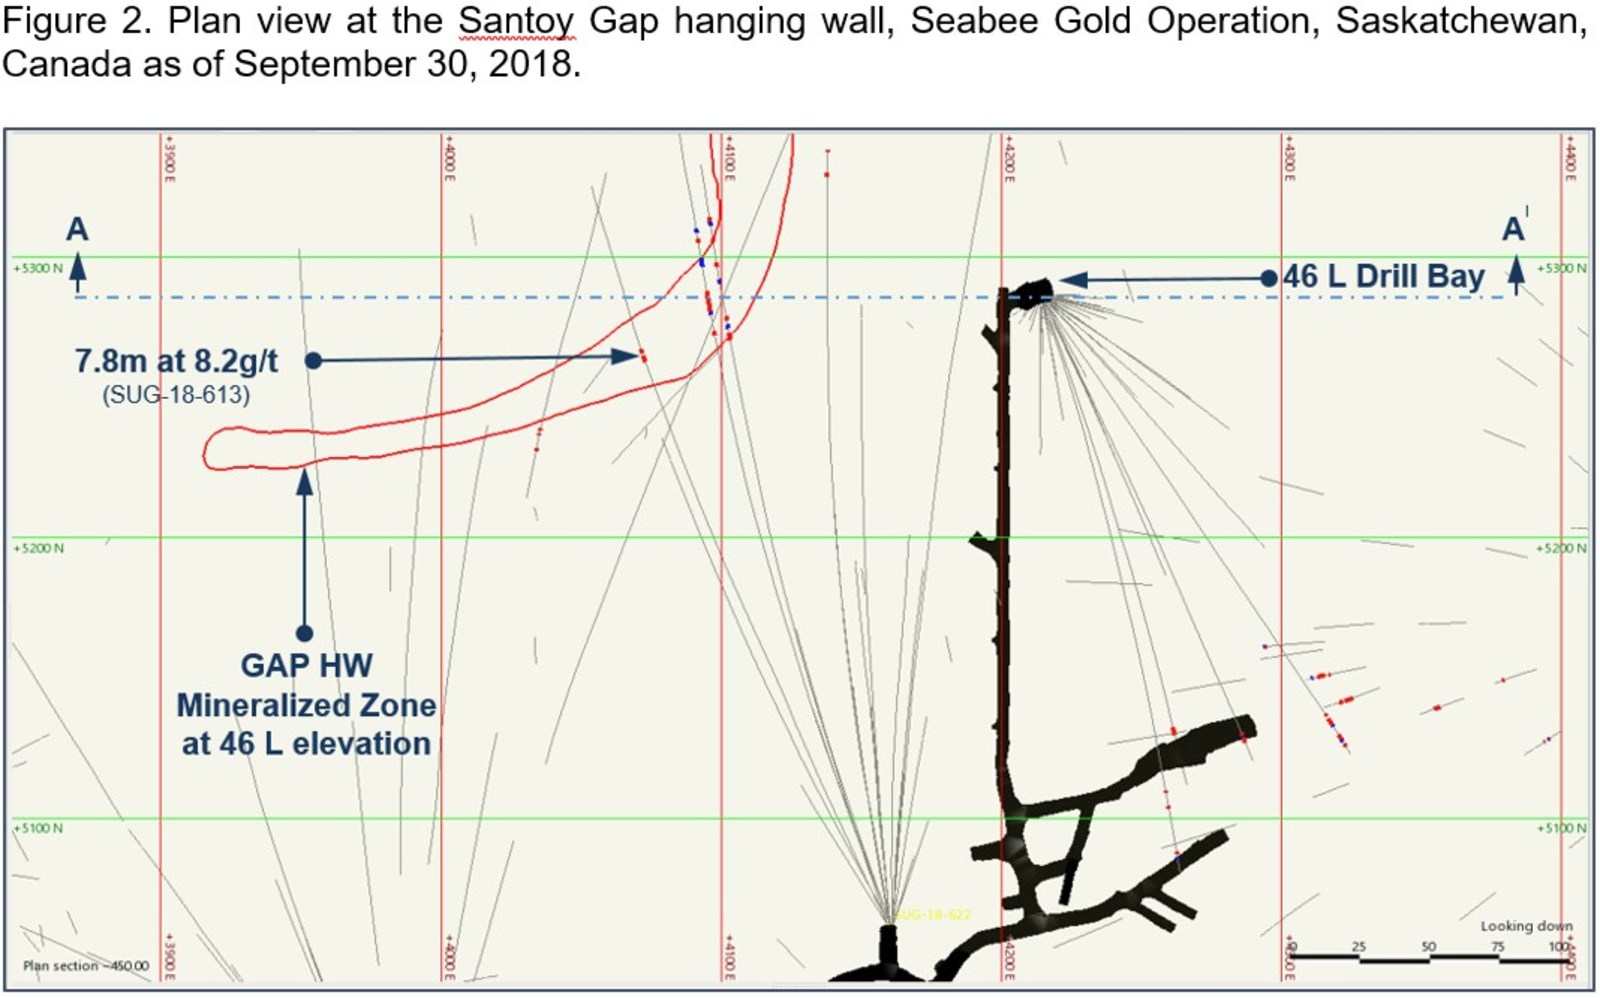 Figure 2. Plan view at the Santoy Gay hanging wall, Seabea Gold Operation, Saskatchewan, Canada as of September 30, 2018.